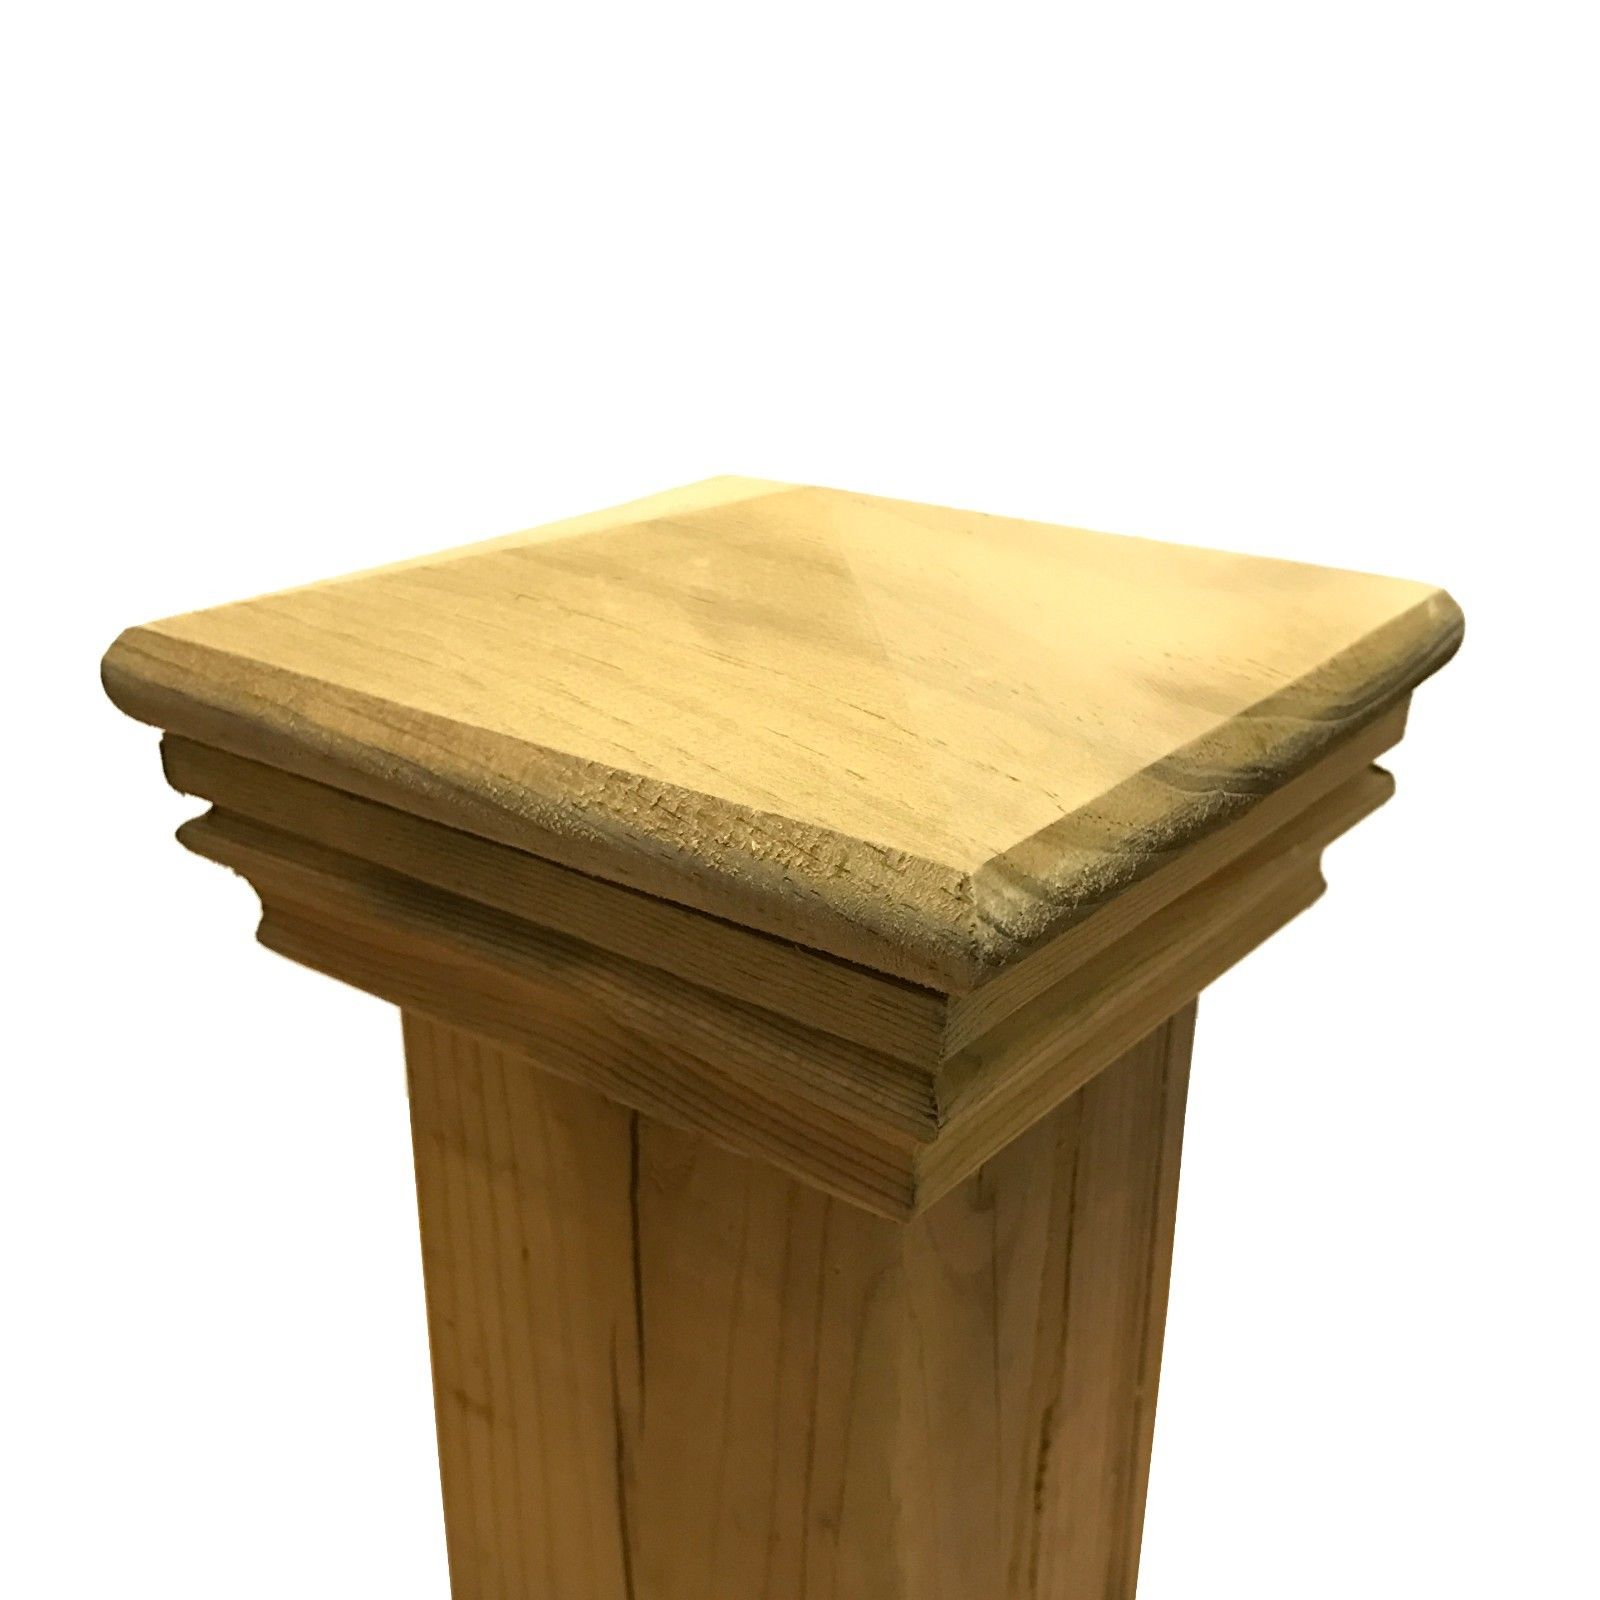 """Pressure Treated Pyramid Wood Post Cap for 3.5"""" x 3.5"""" Fence and Deck Posts"""